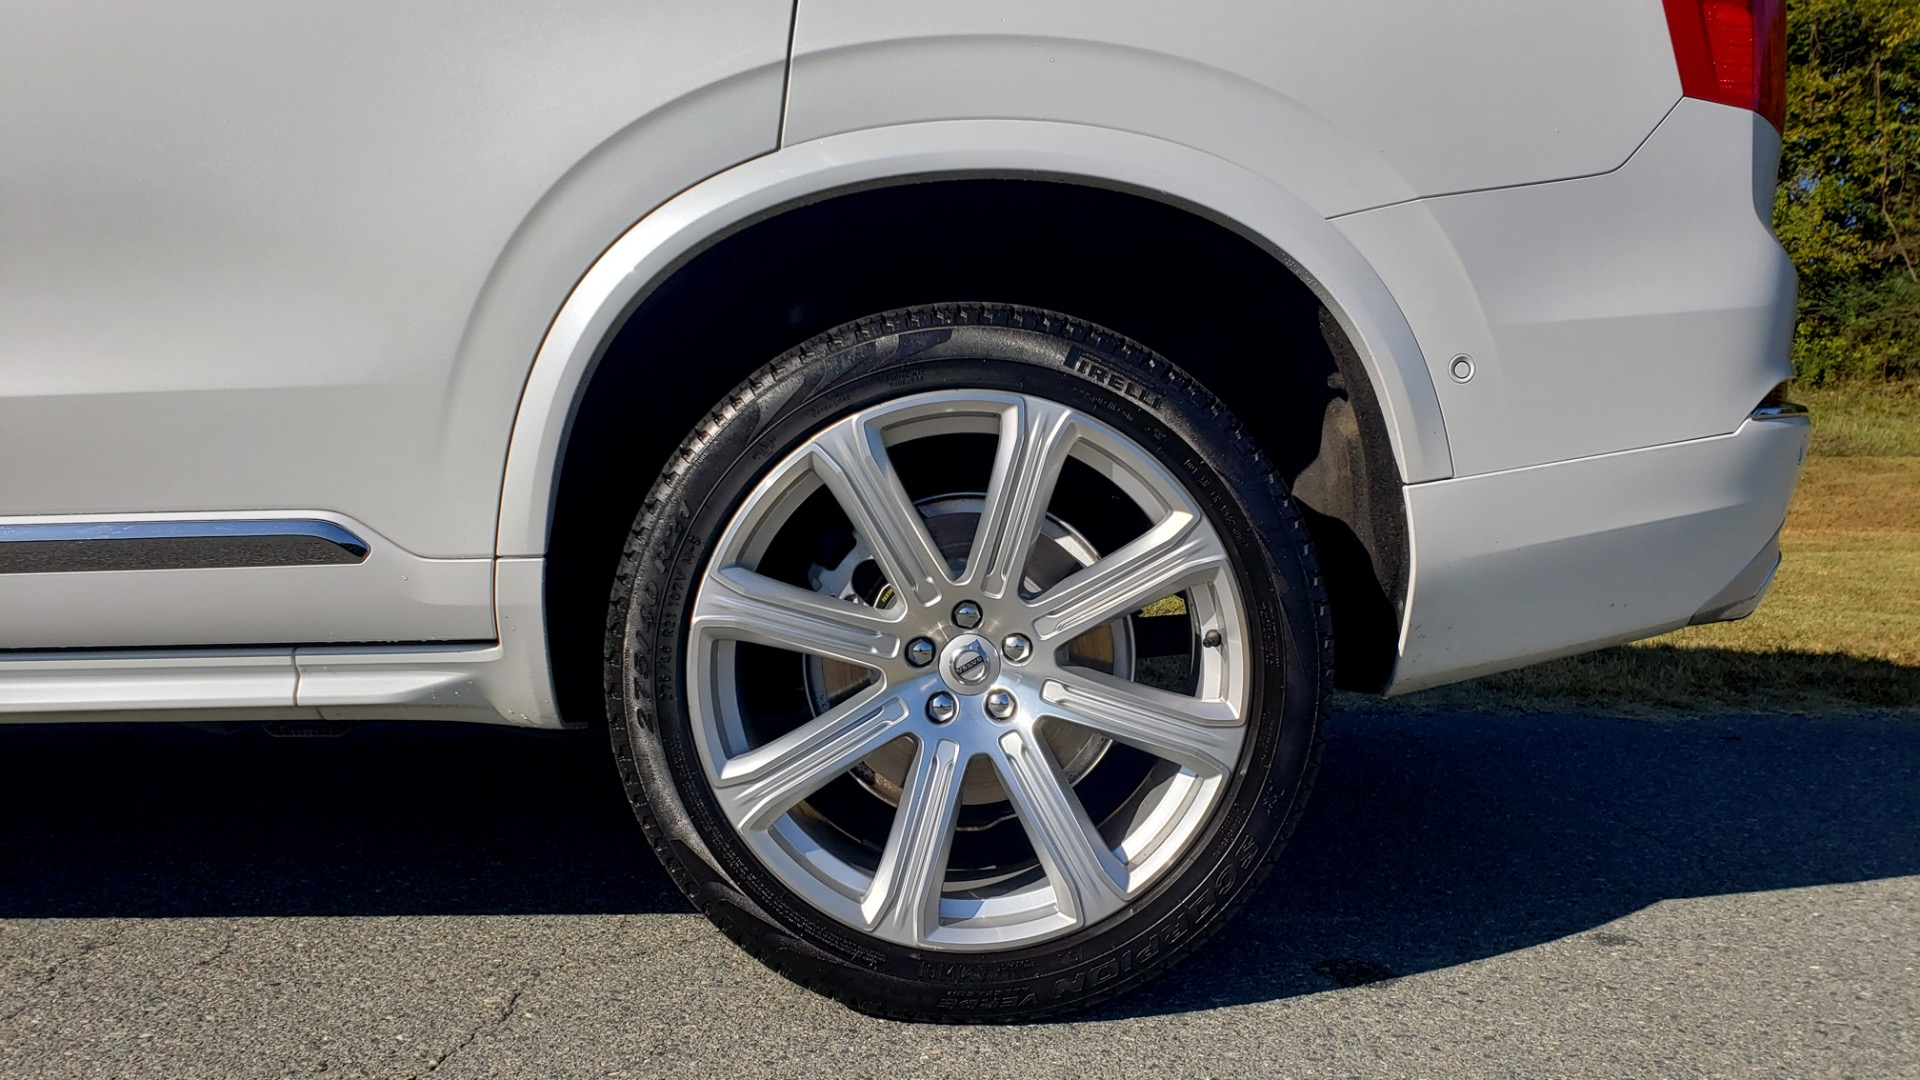 Used 2017 Volvo XC90 INSCRIPTION / AWD / NAV / SUNROOF / 3-ROW / CAMERA for sale Sold at Formula Imports in Charlotte NC 28227 8